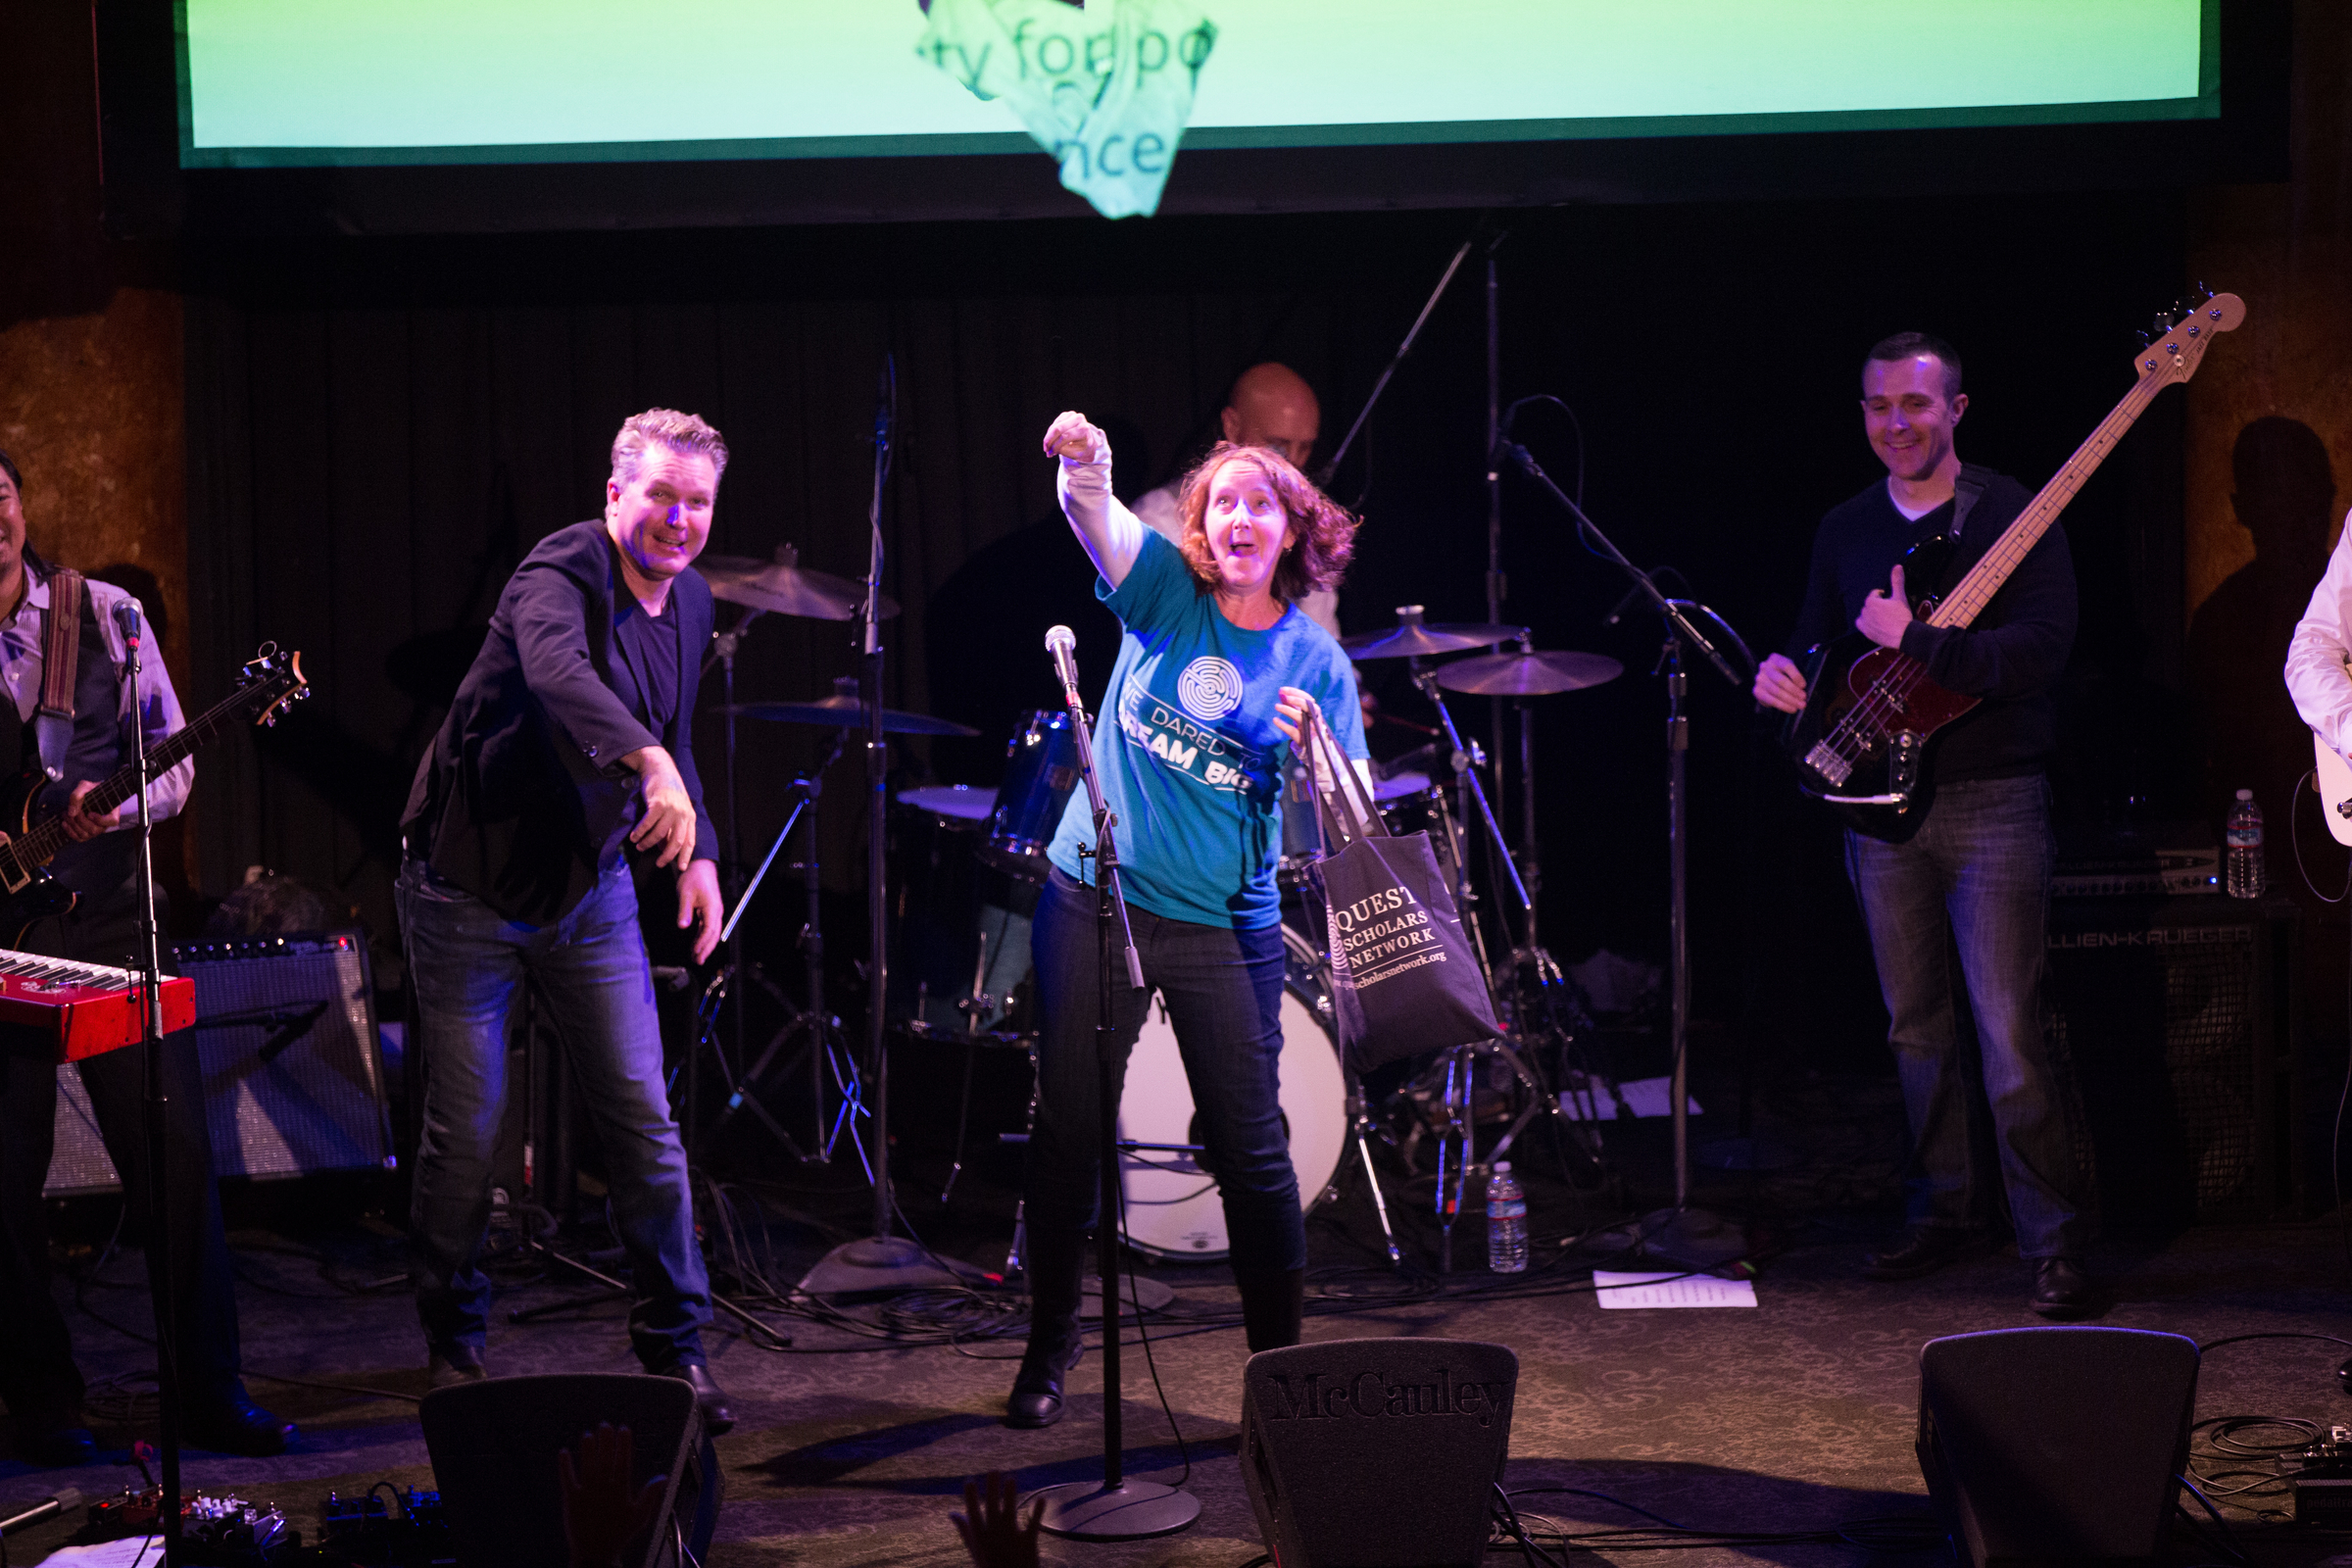 Here our Law Rocks SF emcee and the nonprofit representative from QuestBridge throw swag into the crowd. QuestBridge was the nonprofit pick of the humorously named LawrJe$$ & the Big Legal Instruments (Gibson, Dunn & Crutcher; King & Spalding; Mallari Advisory Services).